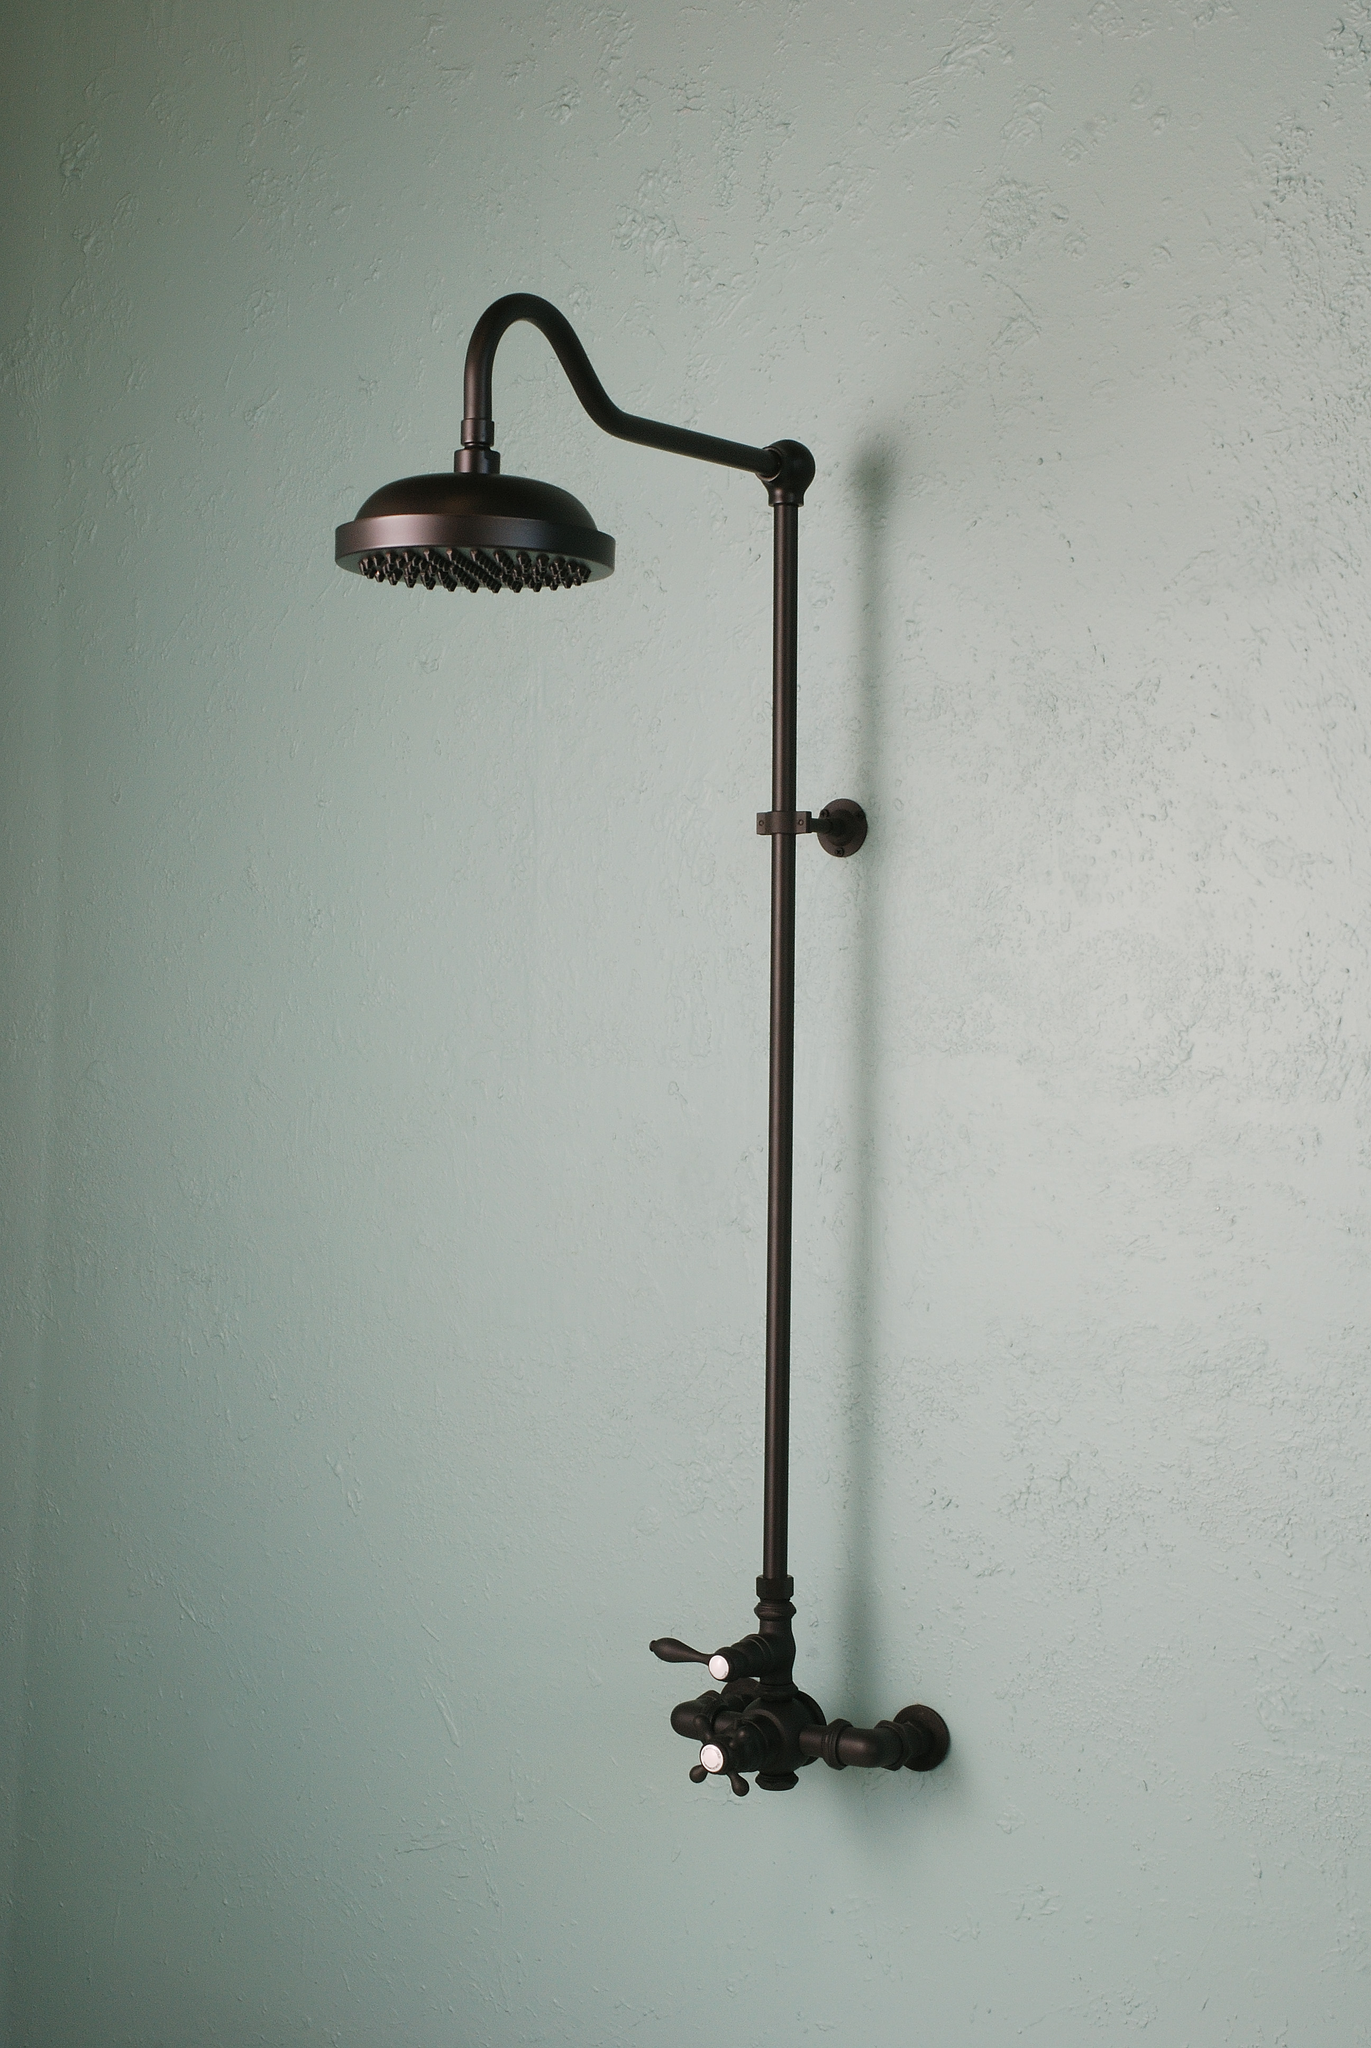 Vintage Style Exposed Thermostatic Shower Set Rustic Sinks